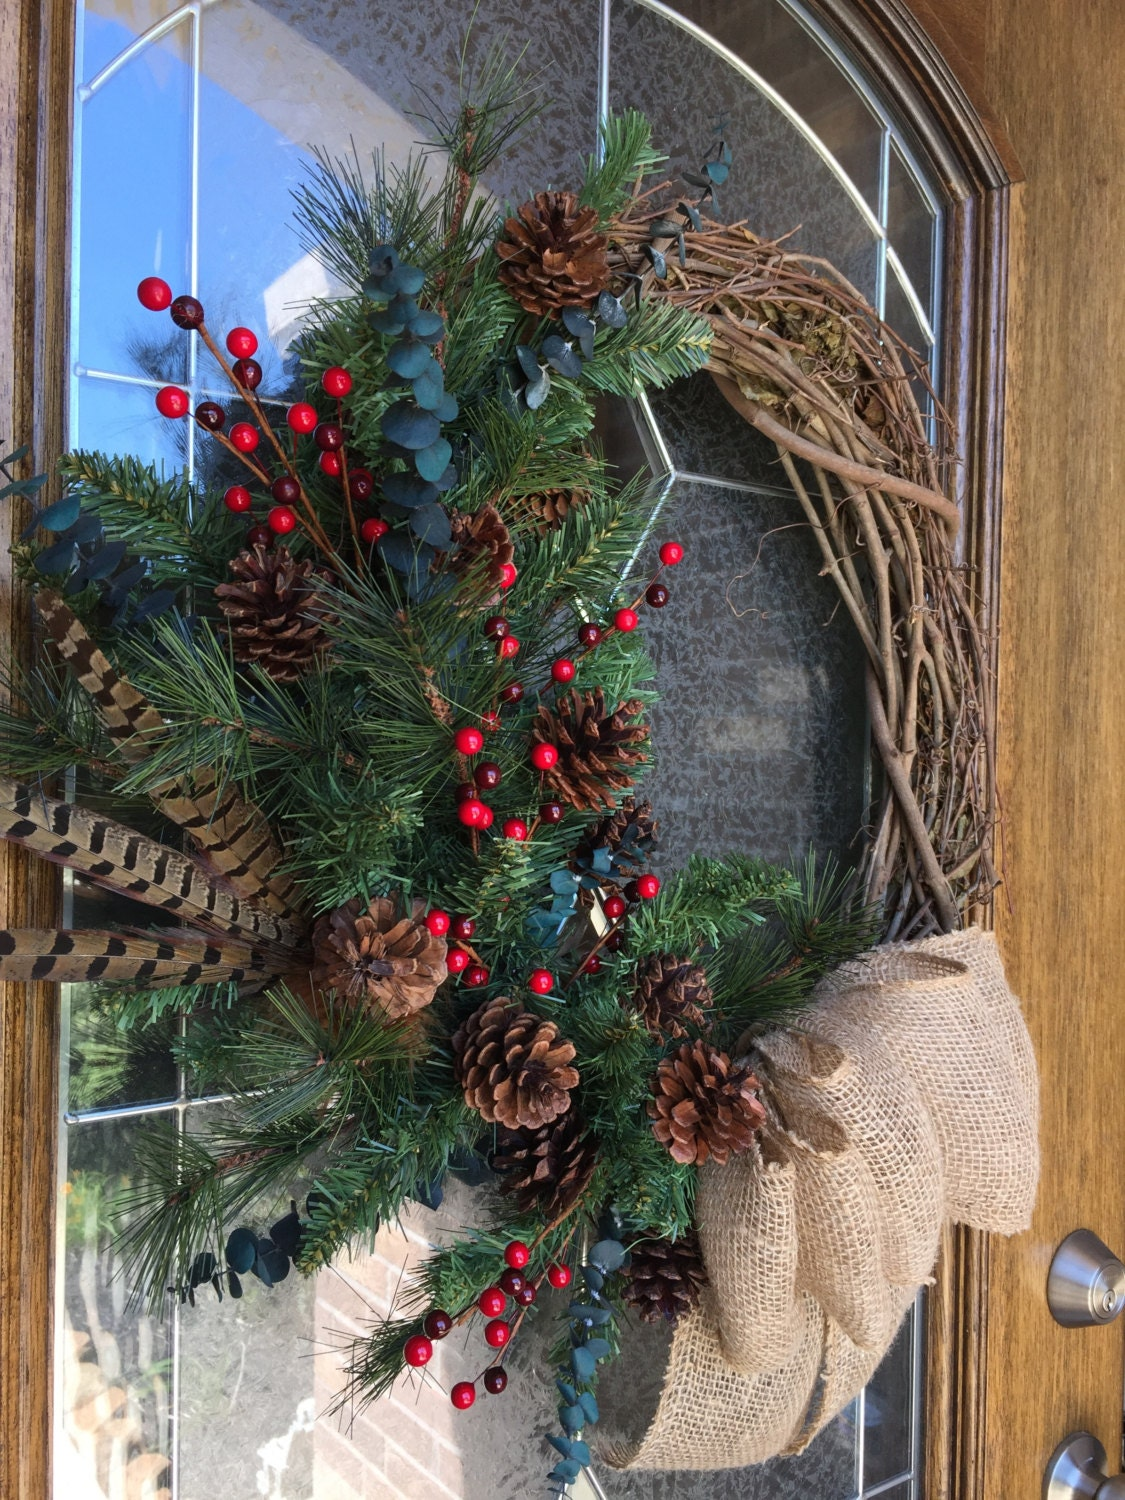 Rustic Wreath Rustic Decor Burlap Bow Red Berries Pine